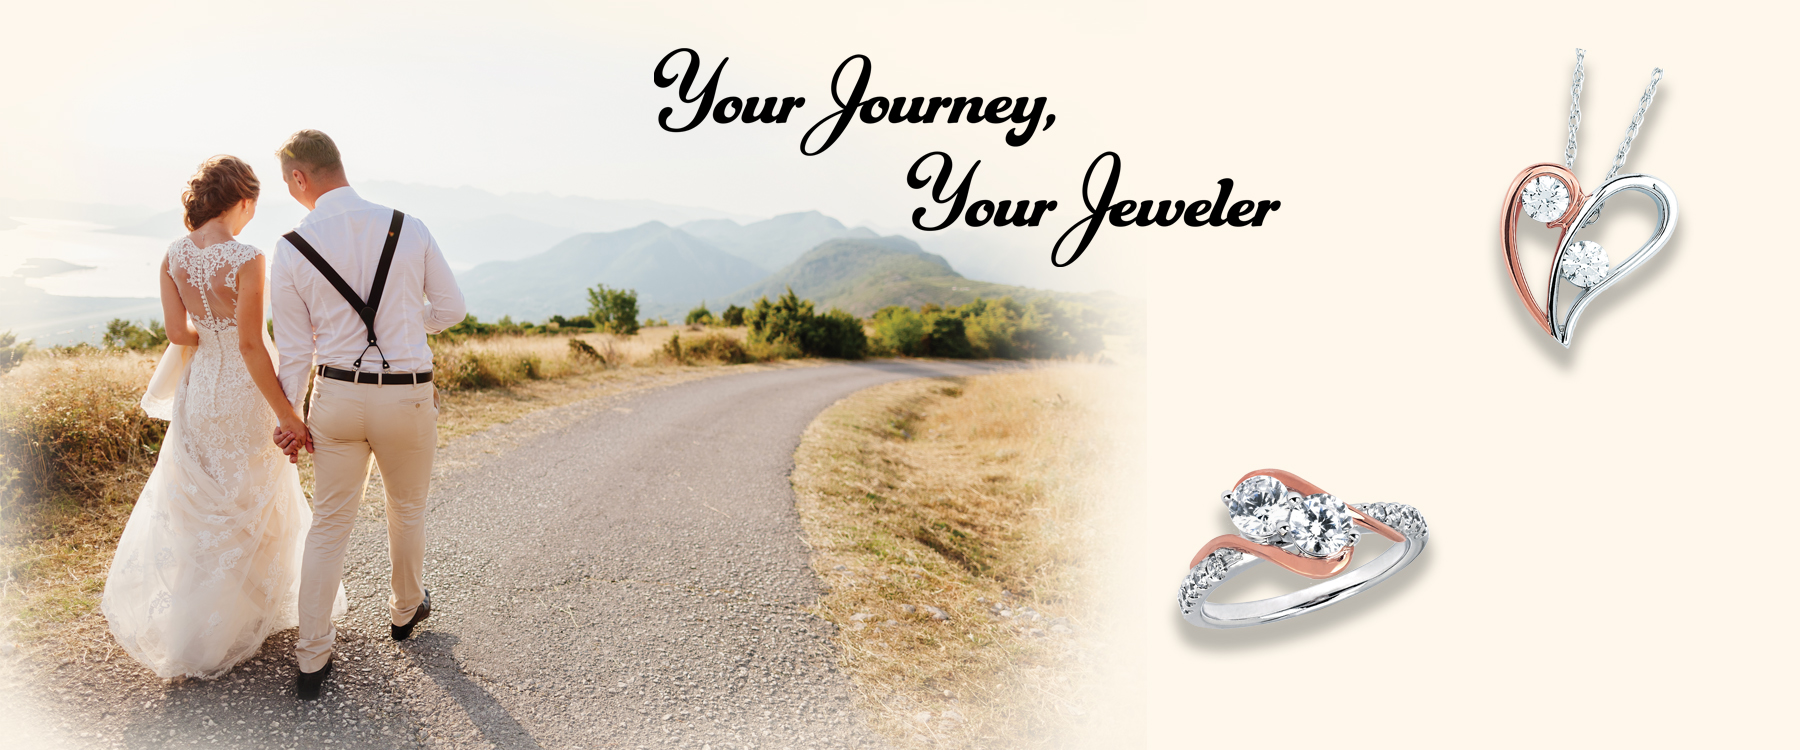 Your journey your jeweler two diamond -